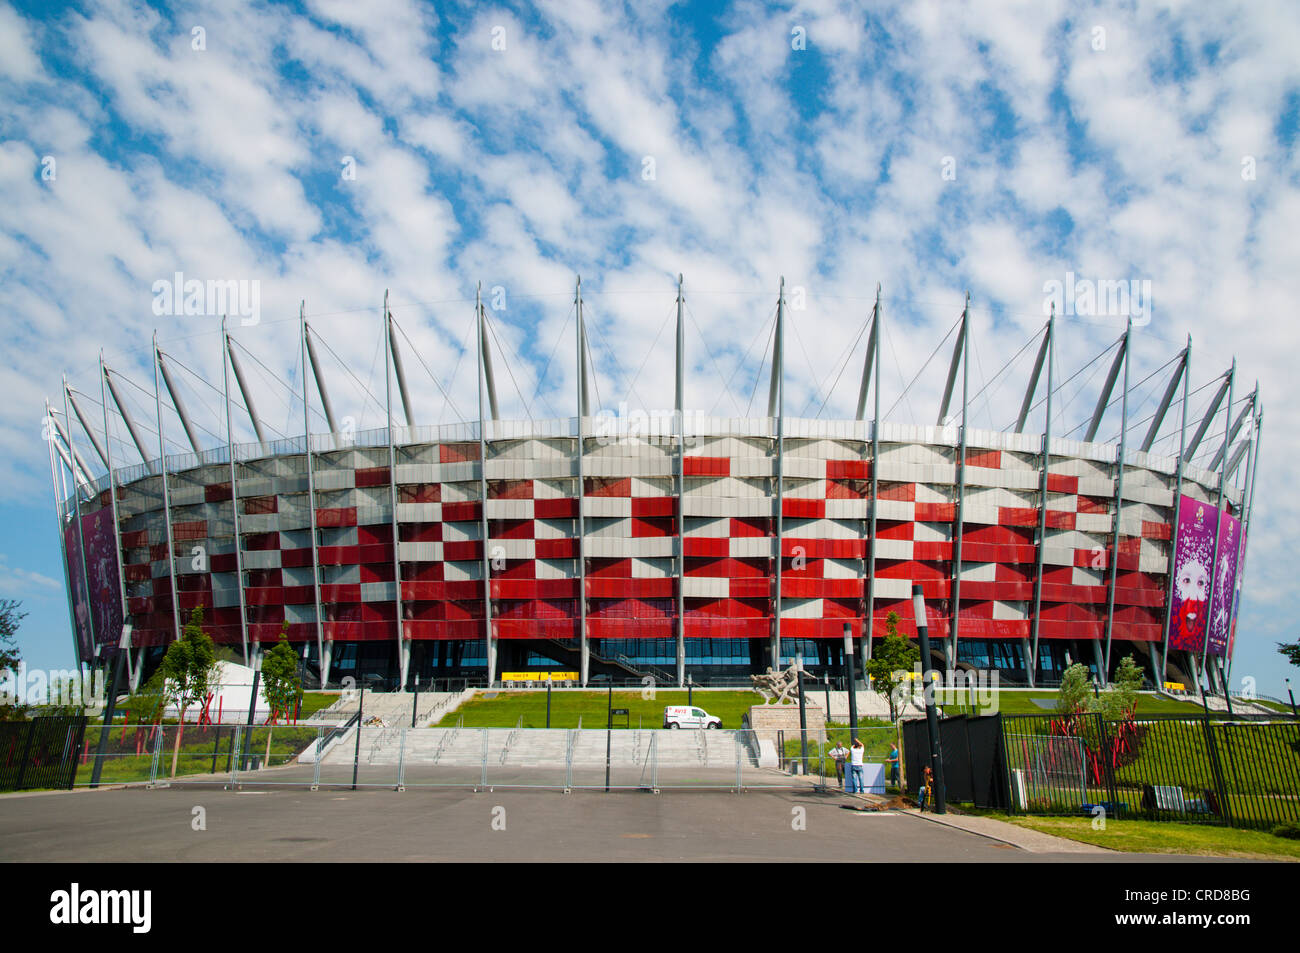 Stadion Narodowy the National Stadium (2012) built for the European football championships Praga district Warsaw - Stock Image